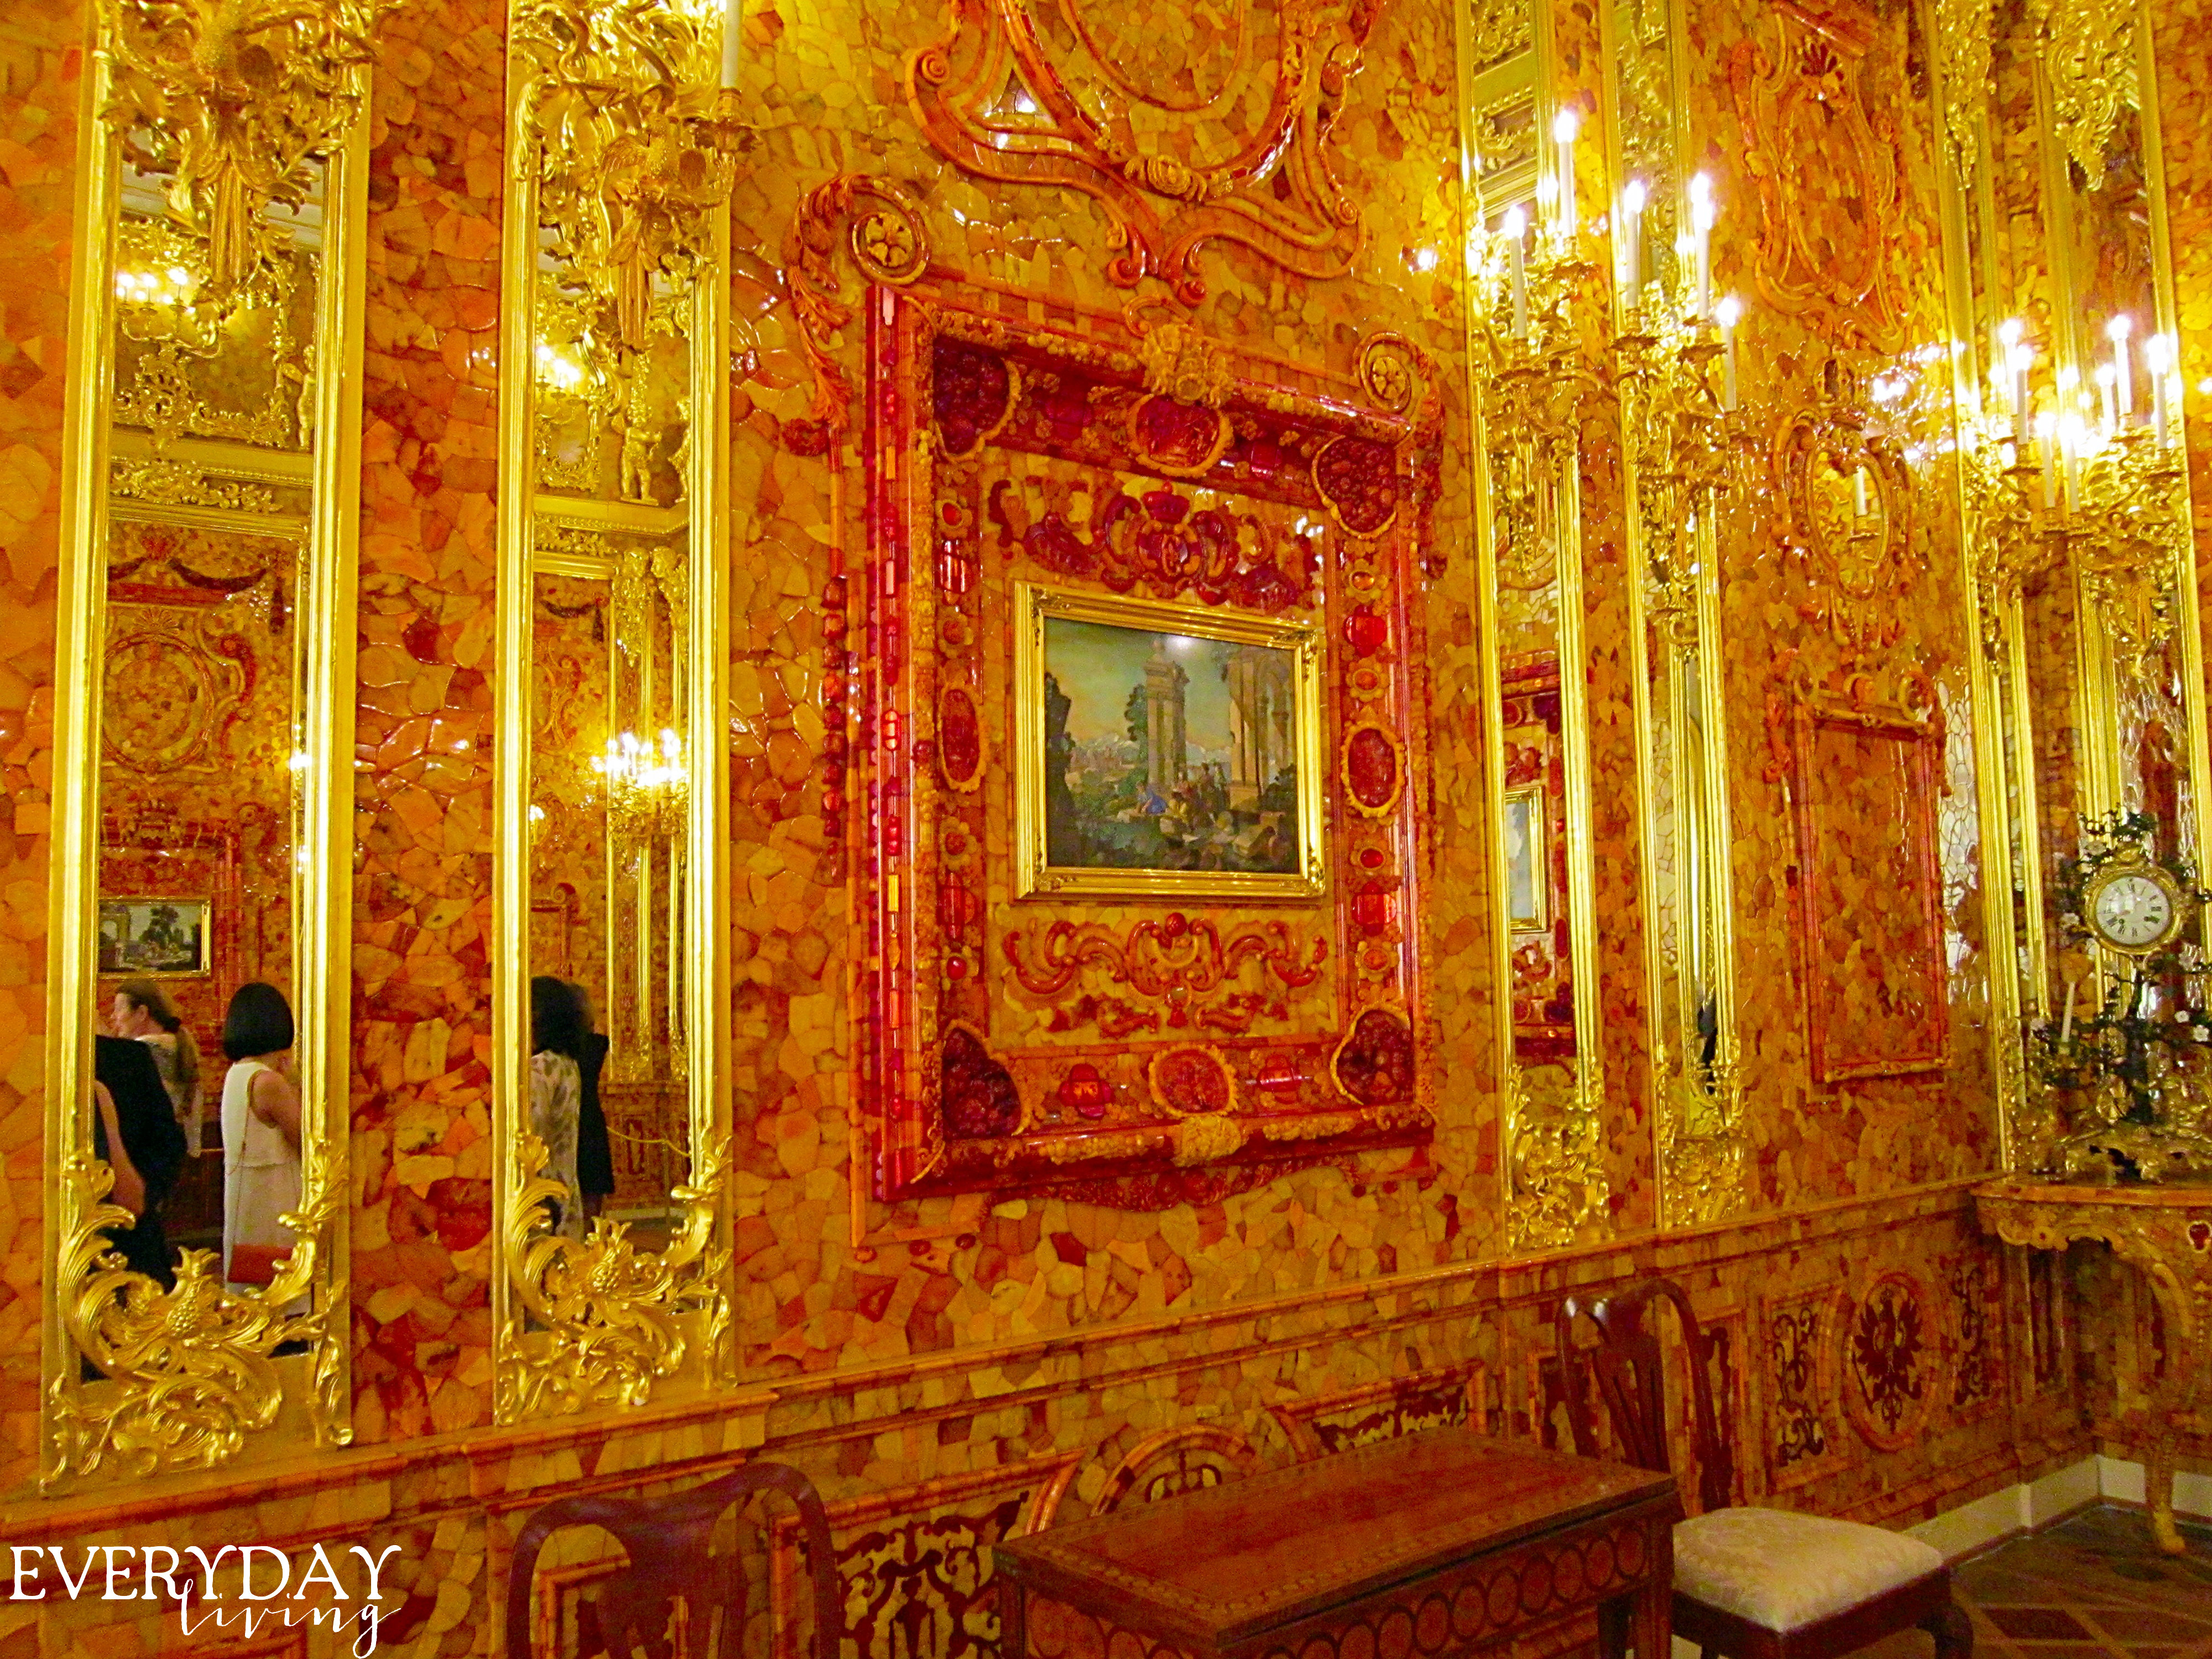 The catherine palace everyday living